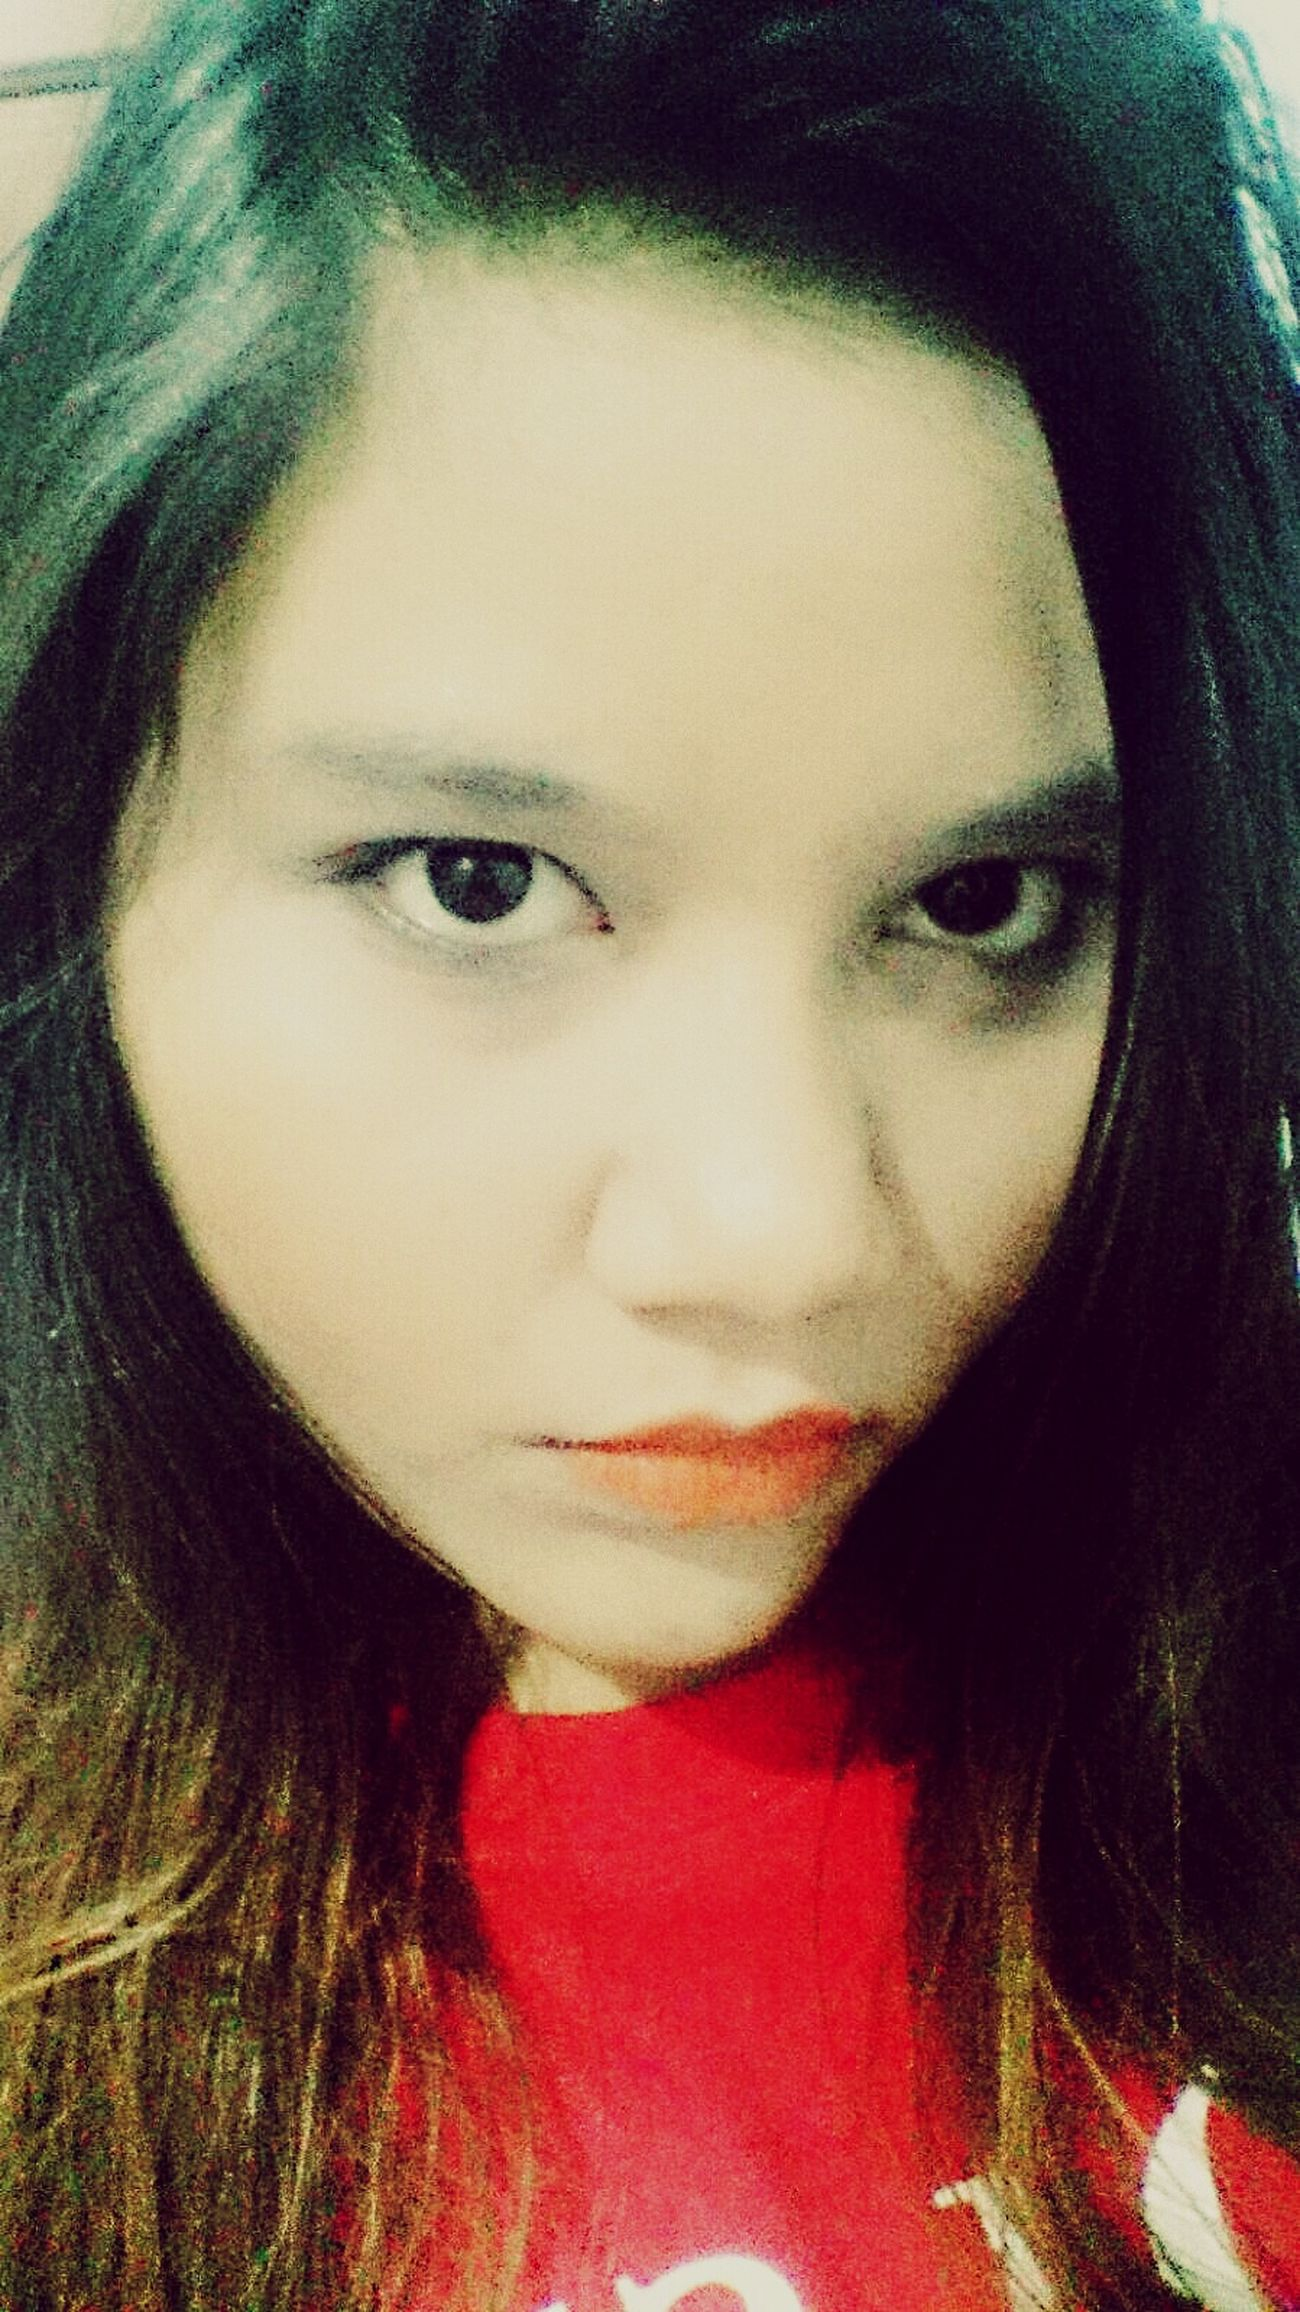 Natural Hair Weirdselfie Weirdfaces Selfportrait Self Potrait